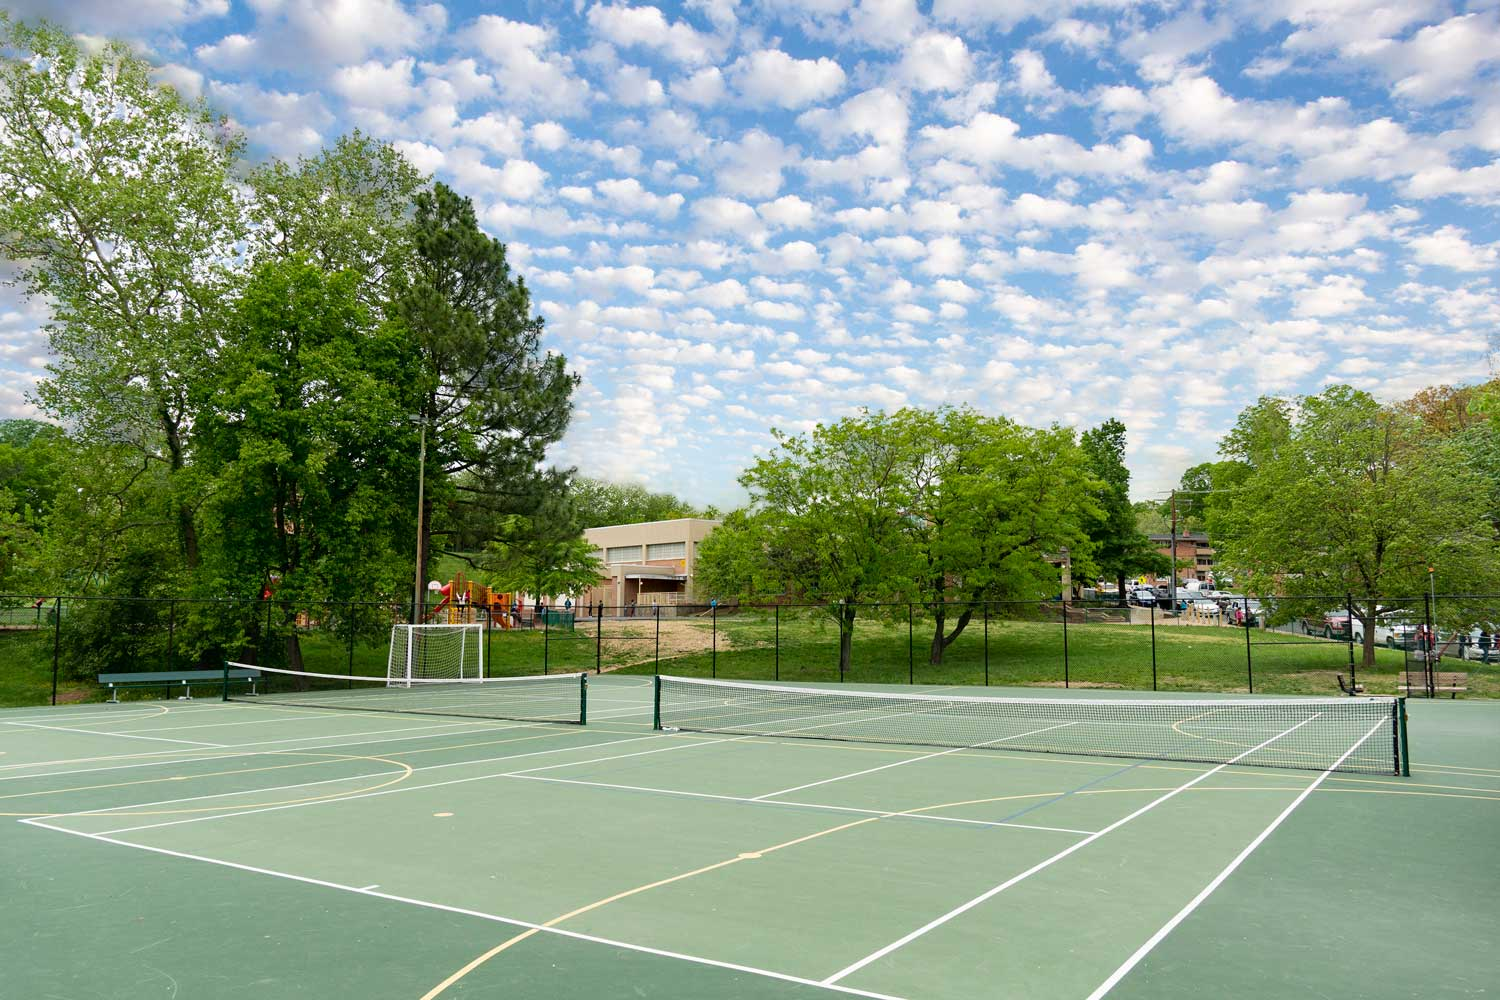 10 minutes to recreation center with tennis courts